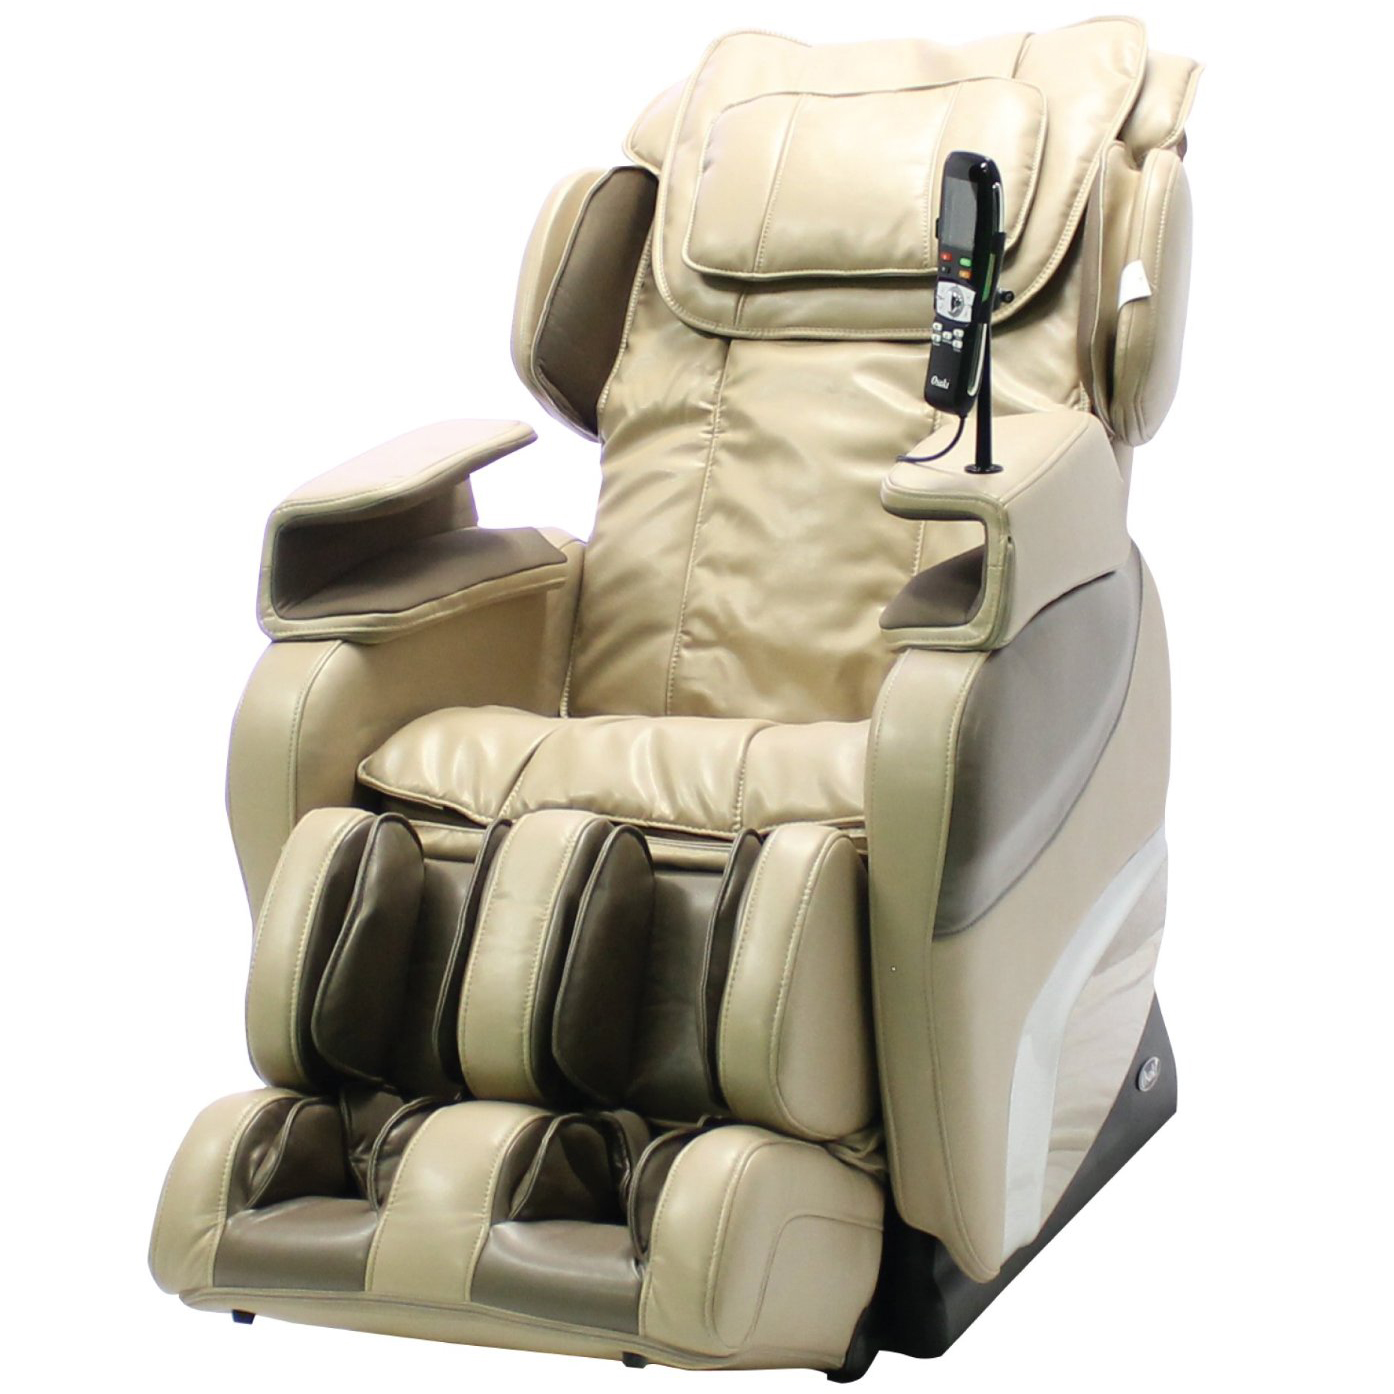 Osaki Massage Chairs Titan Ti 7700r Massage Chair Recliner